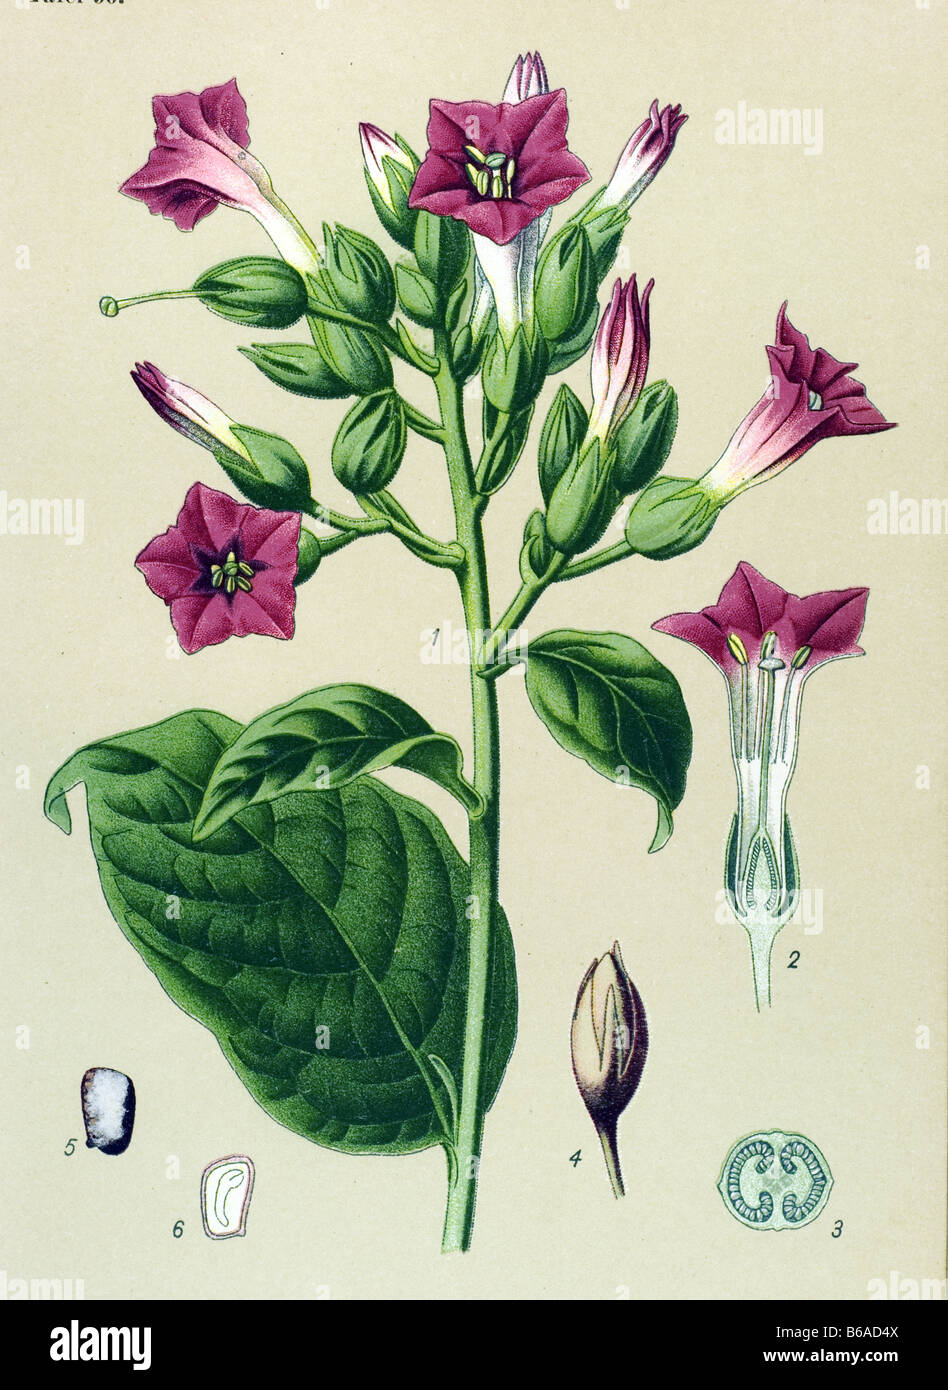 Nicotiana Tabacum Images: Cultivated Tobacco, Nicotiana Tabacum Poisonous Plants